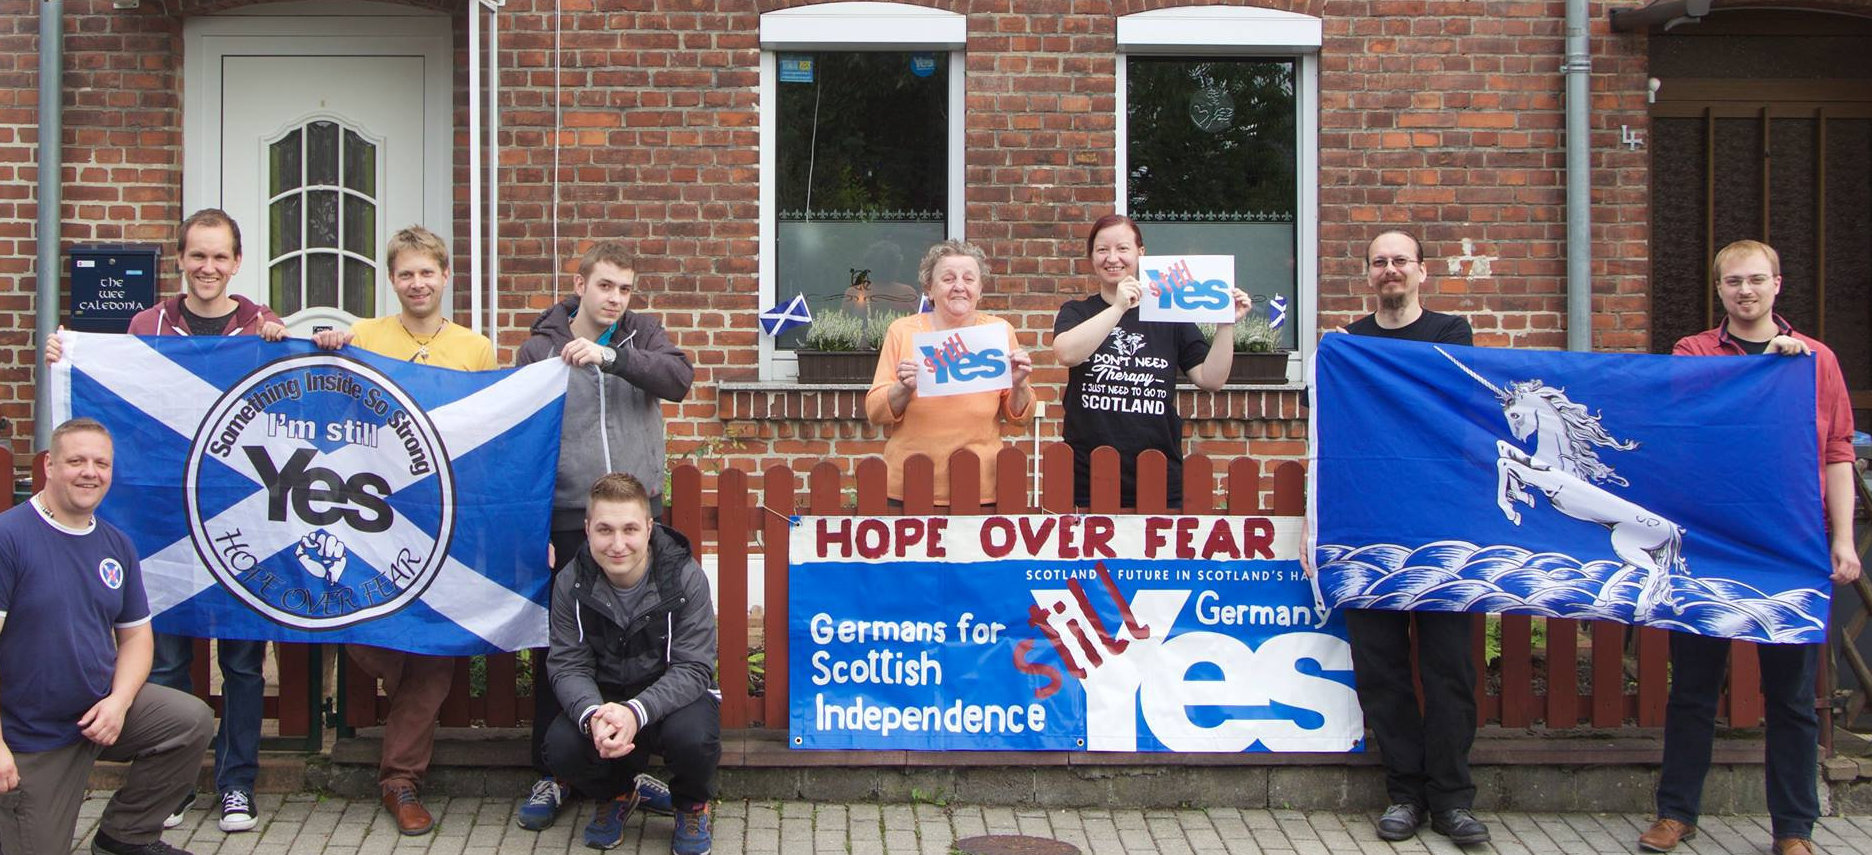 The demo is being organised by Germans for Scottish Independence